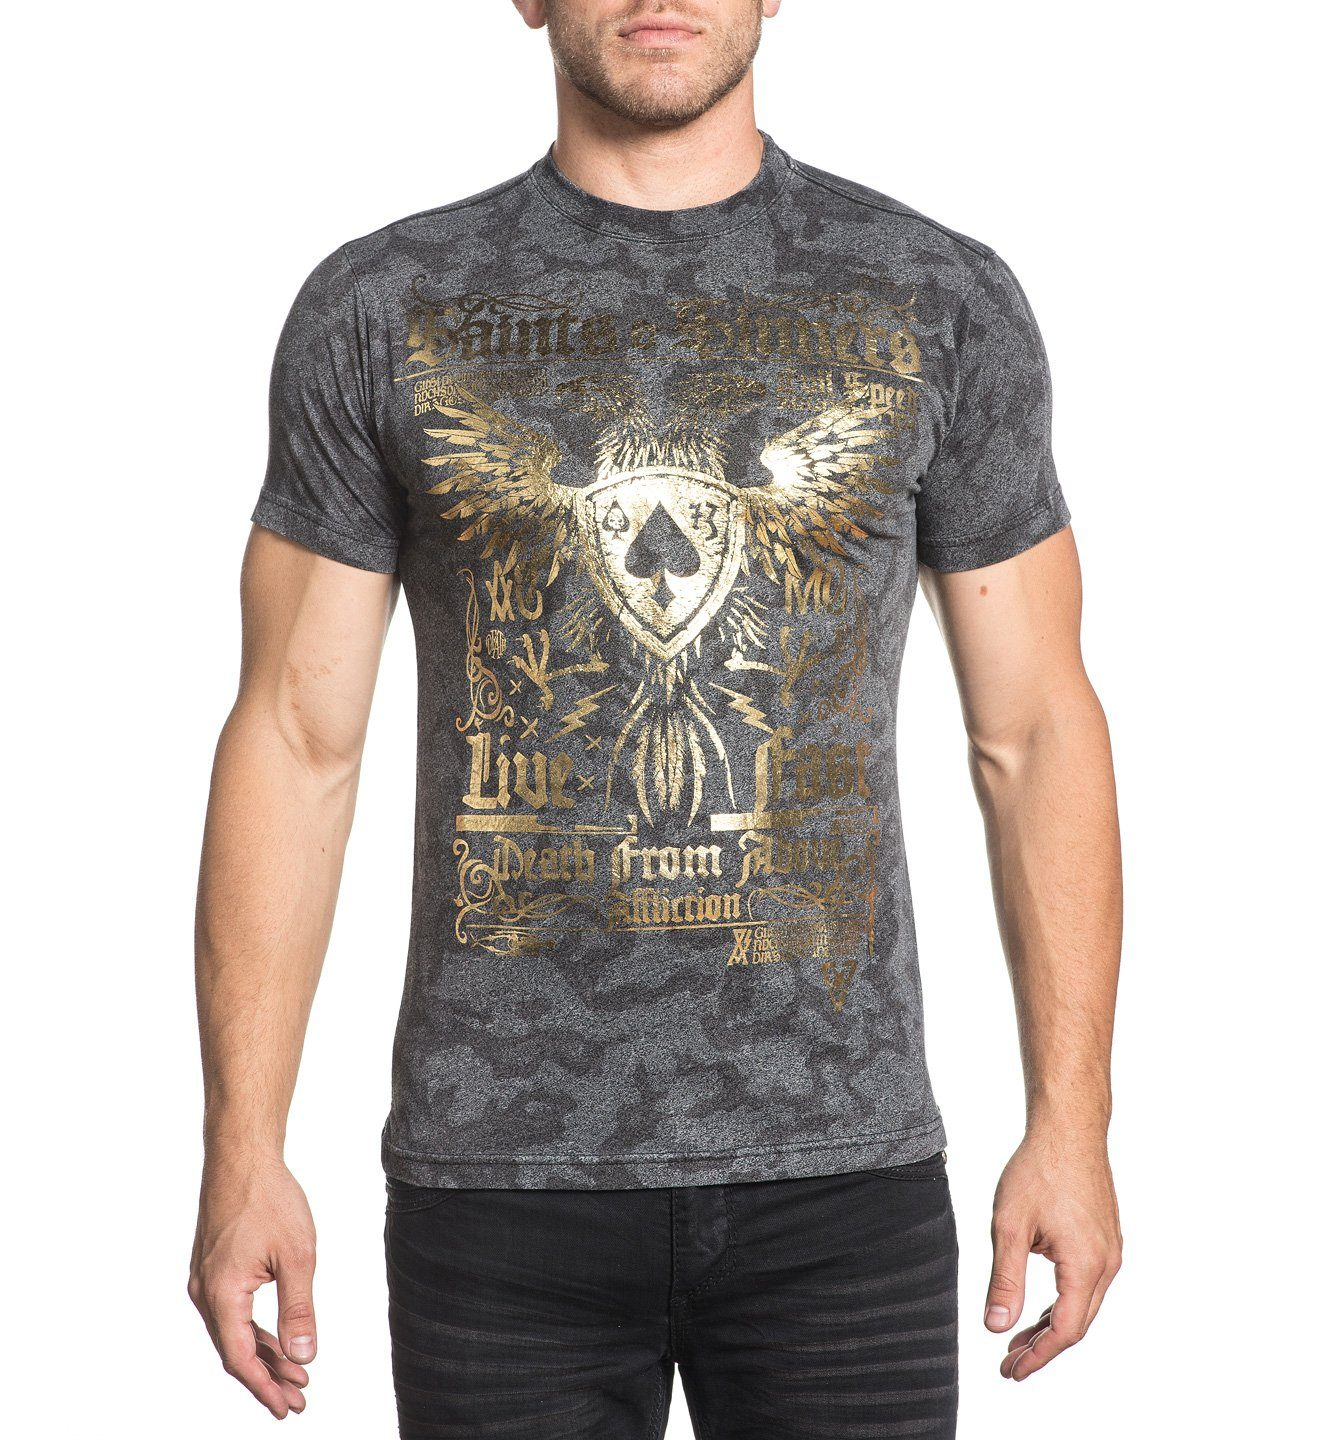 Mens Short Sleeve Tees - Saints & Sinners